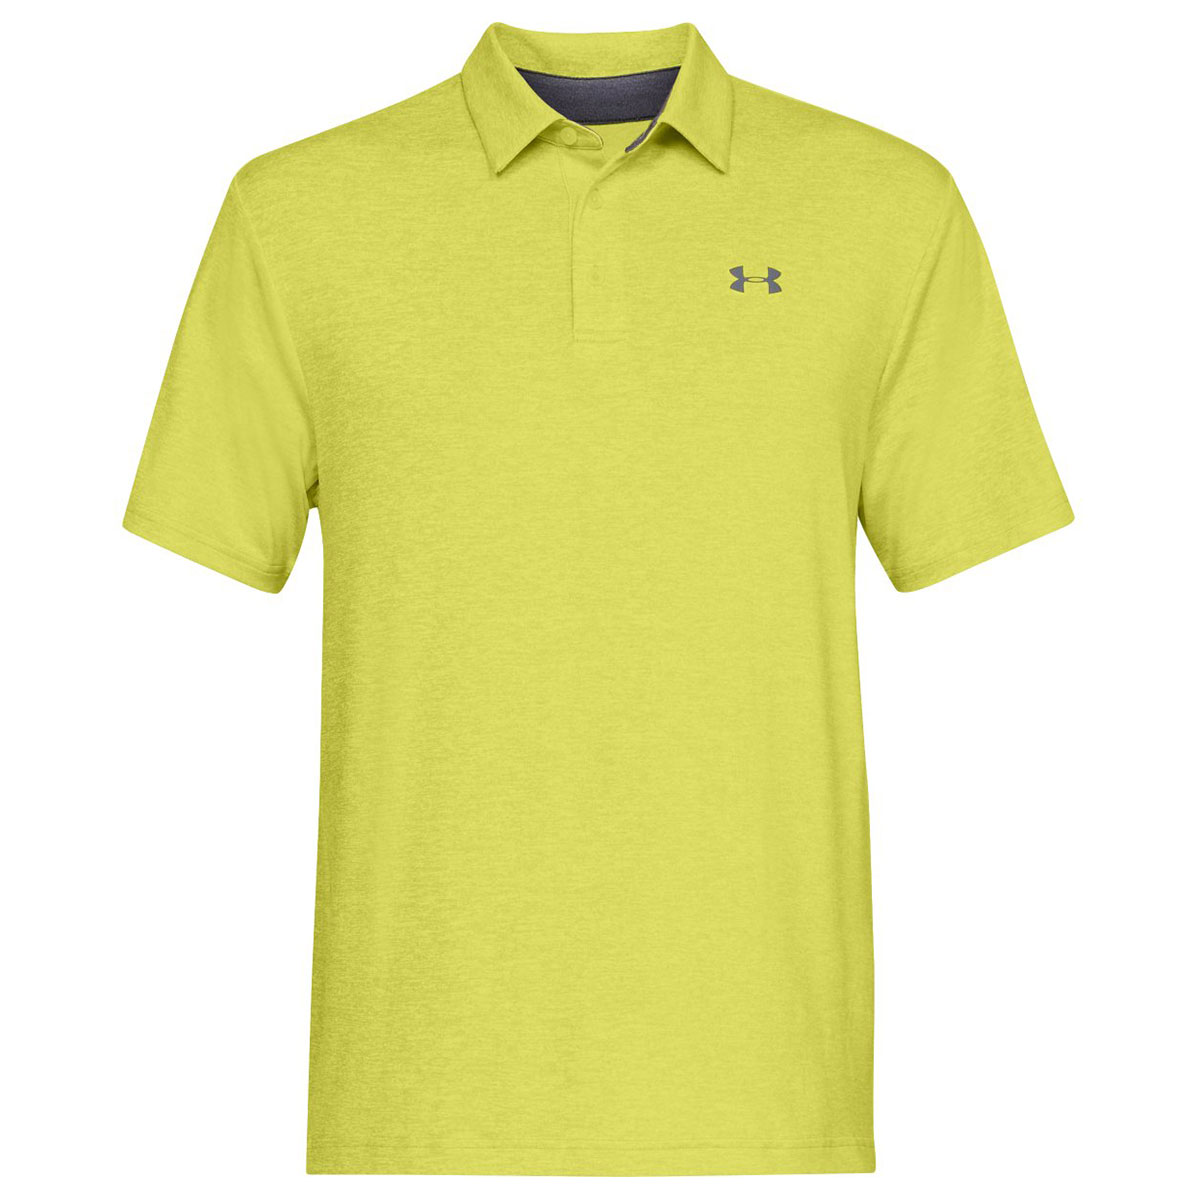 Under-Armour-Mens-2019-Playoff-Polo-2-0-Breathable-Light-Stretch-Polo-Shirt thumbnail 71